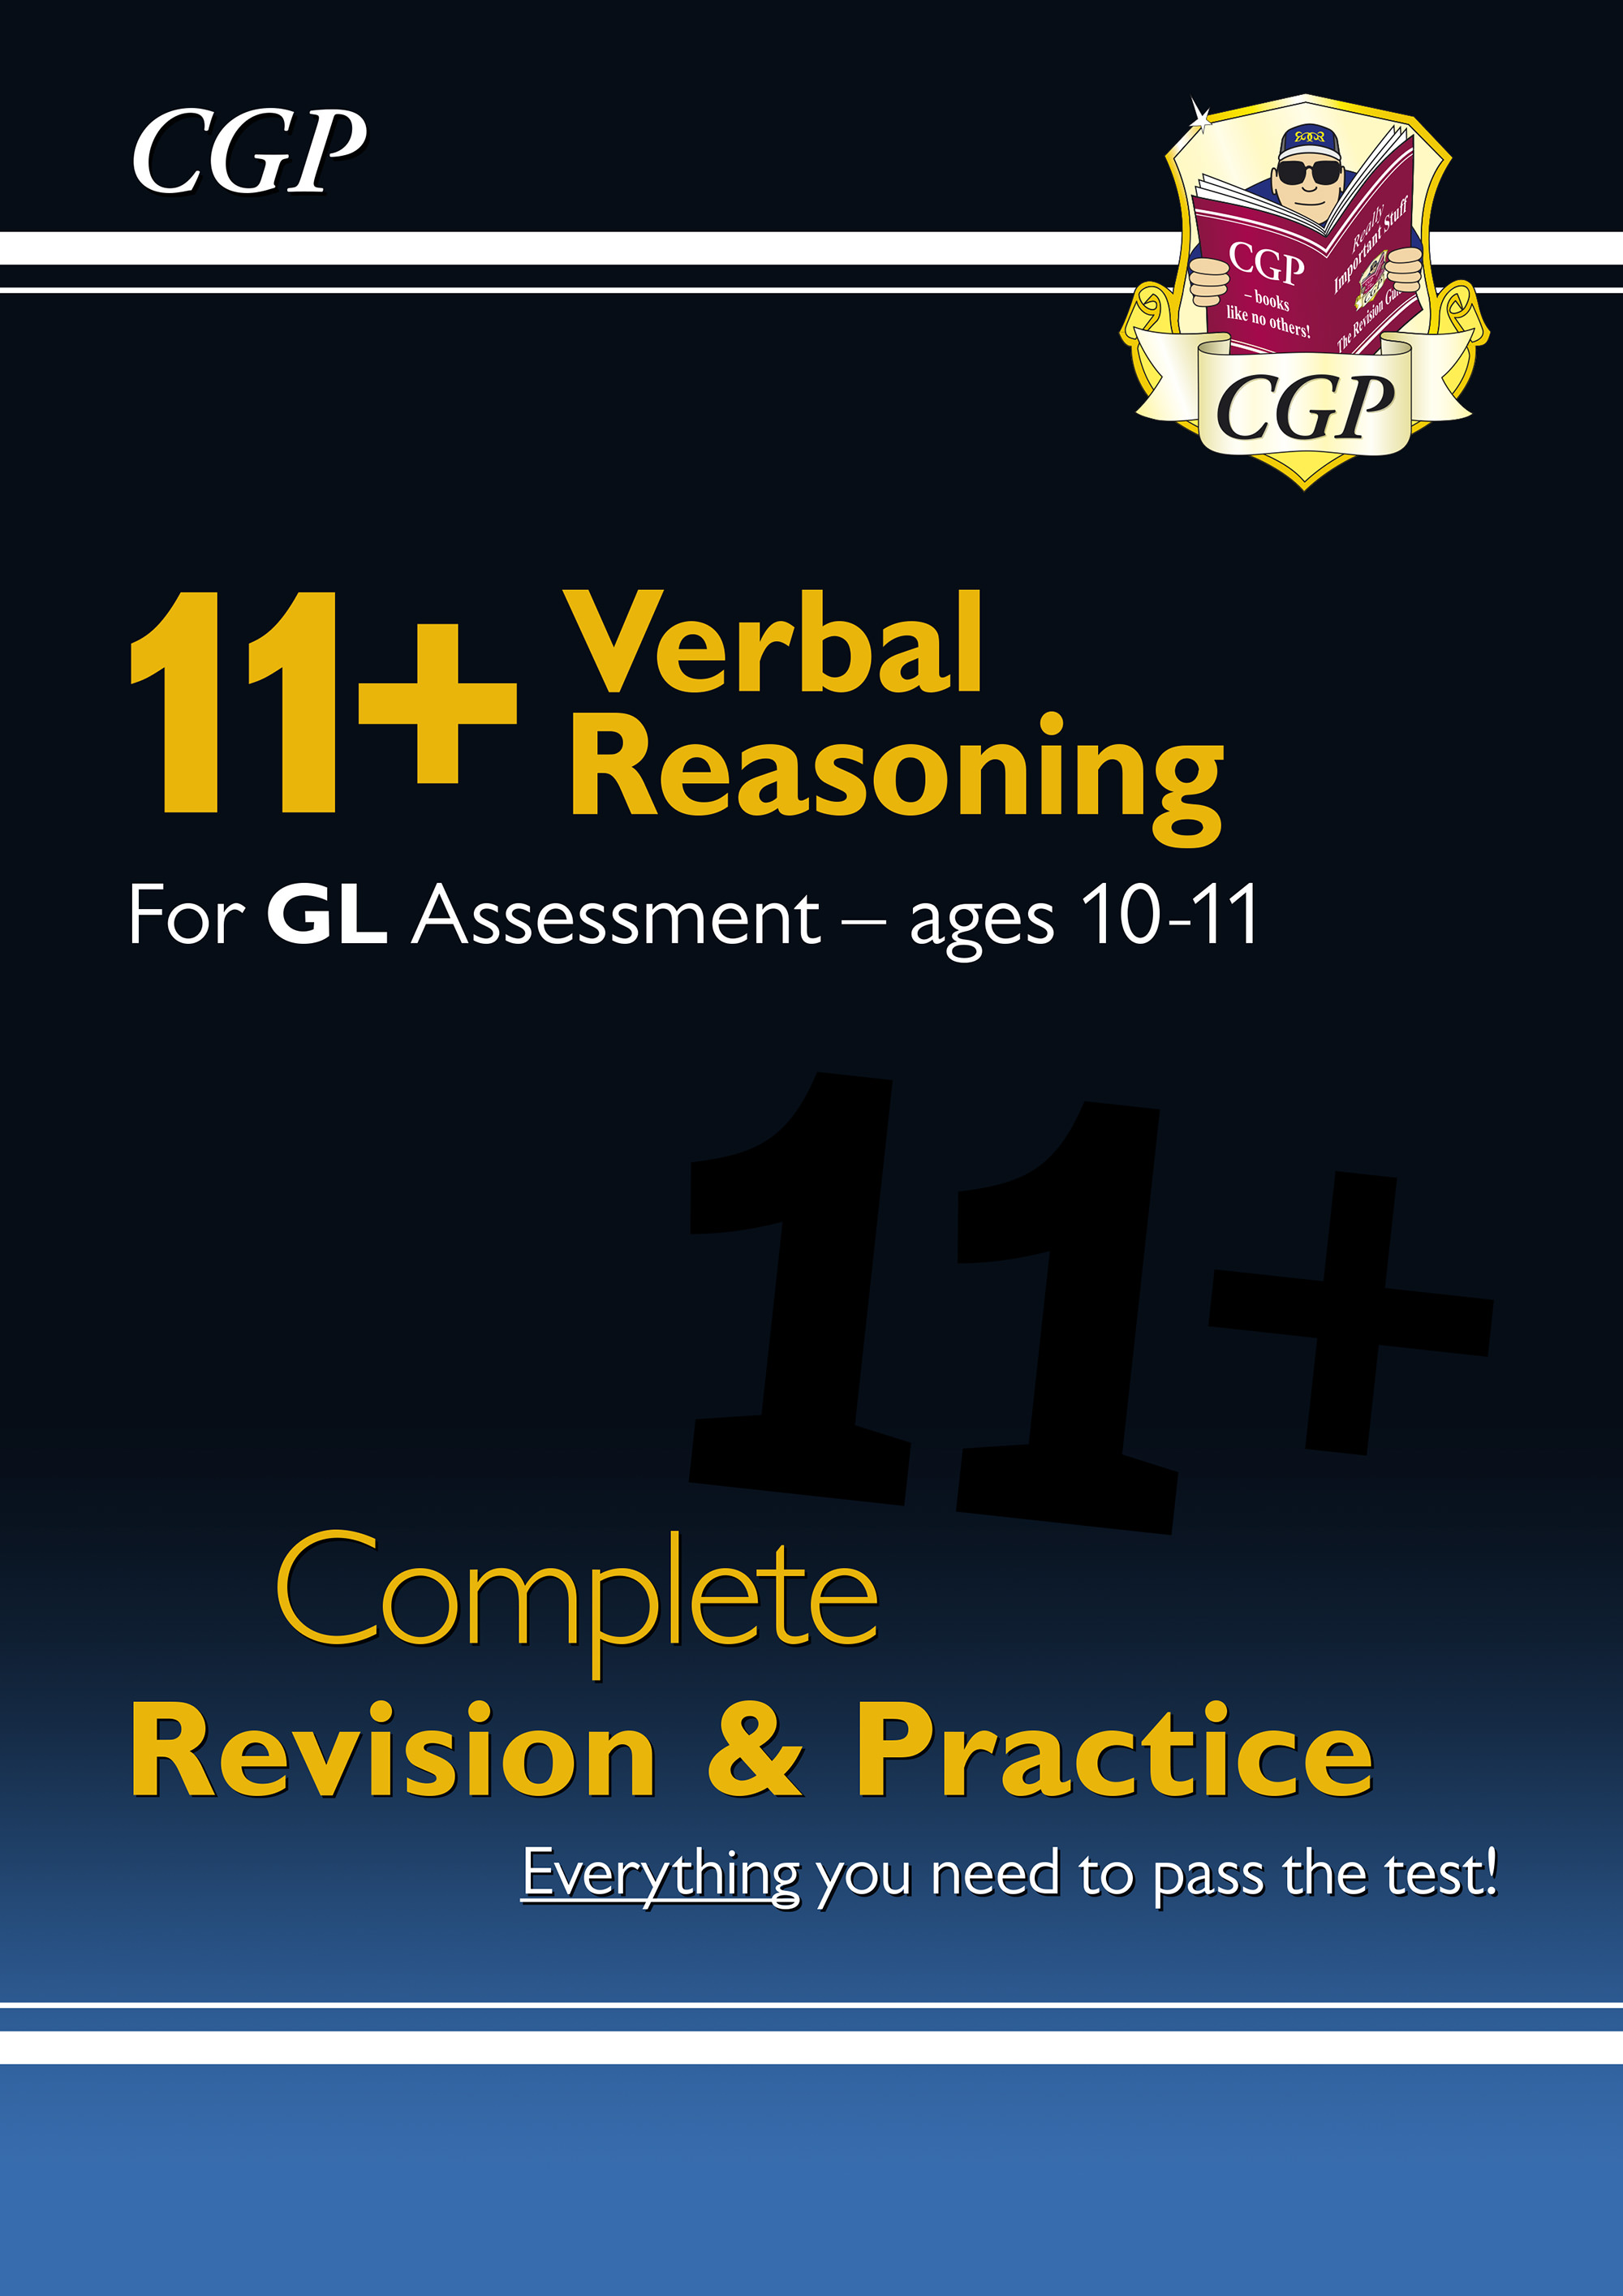 VHSE1D - New 11+ GL Verbal Reasoning Complete Revision and Practice - Ages 10-11 Online Edition